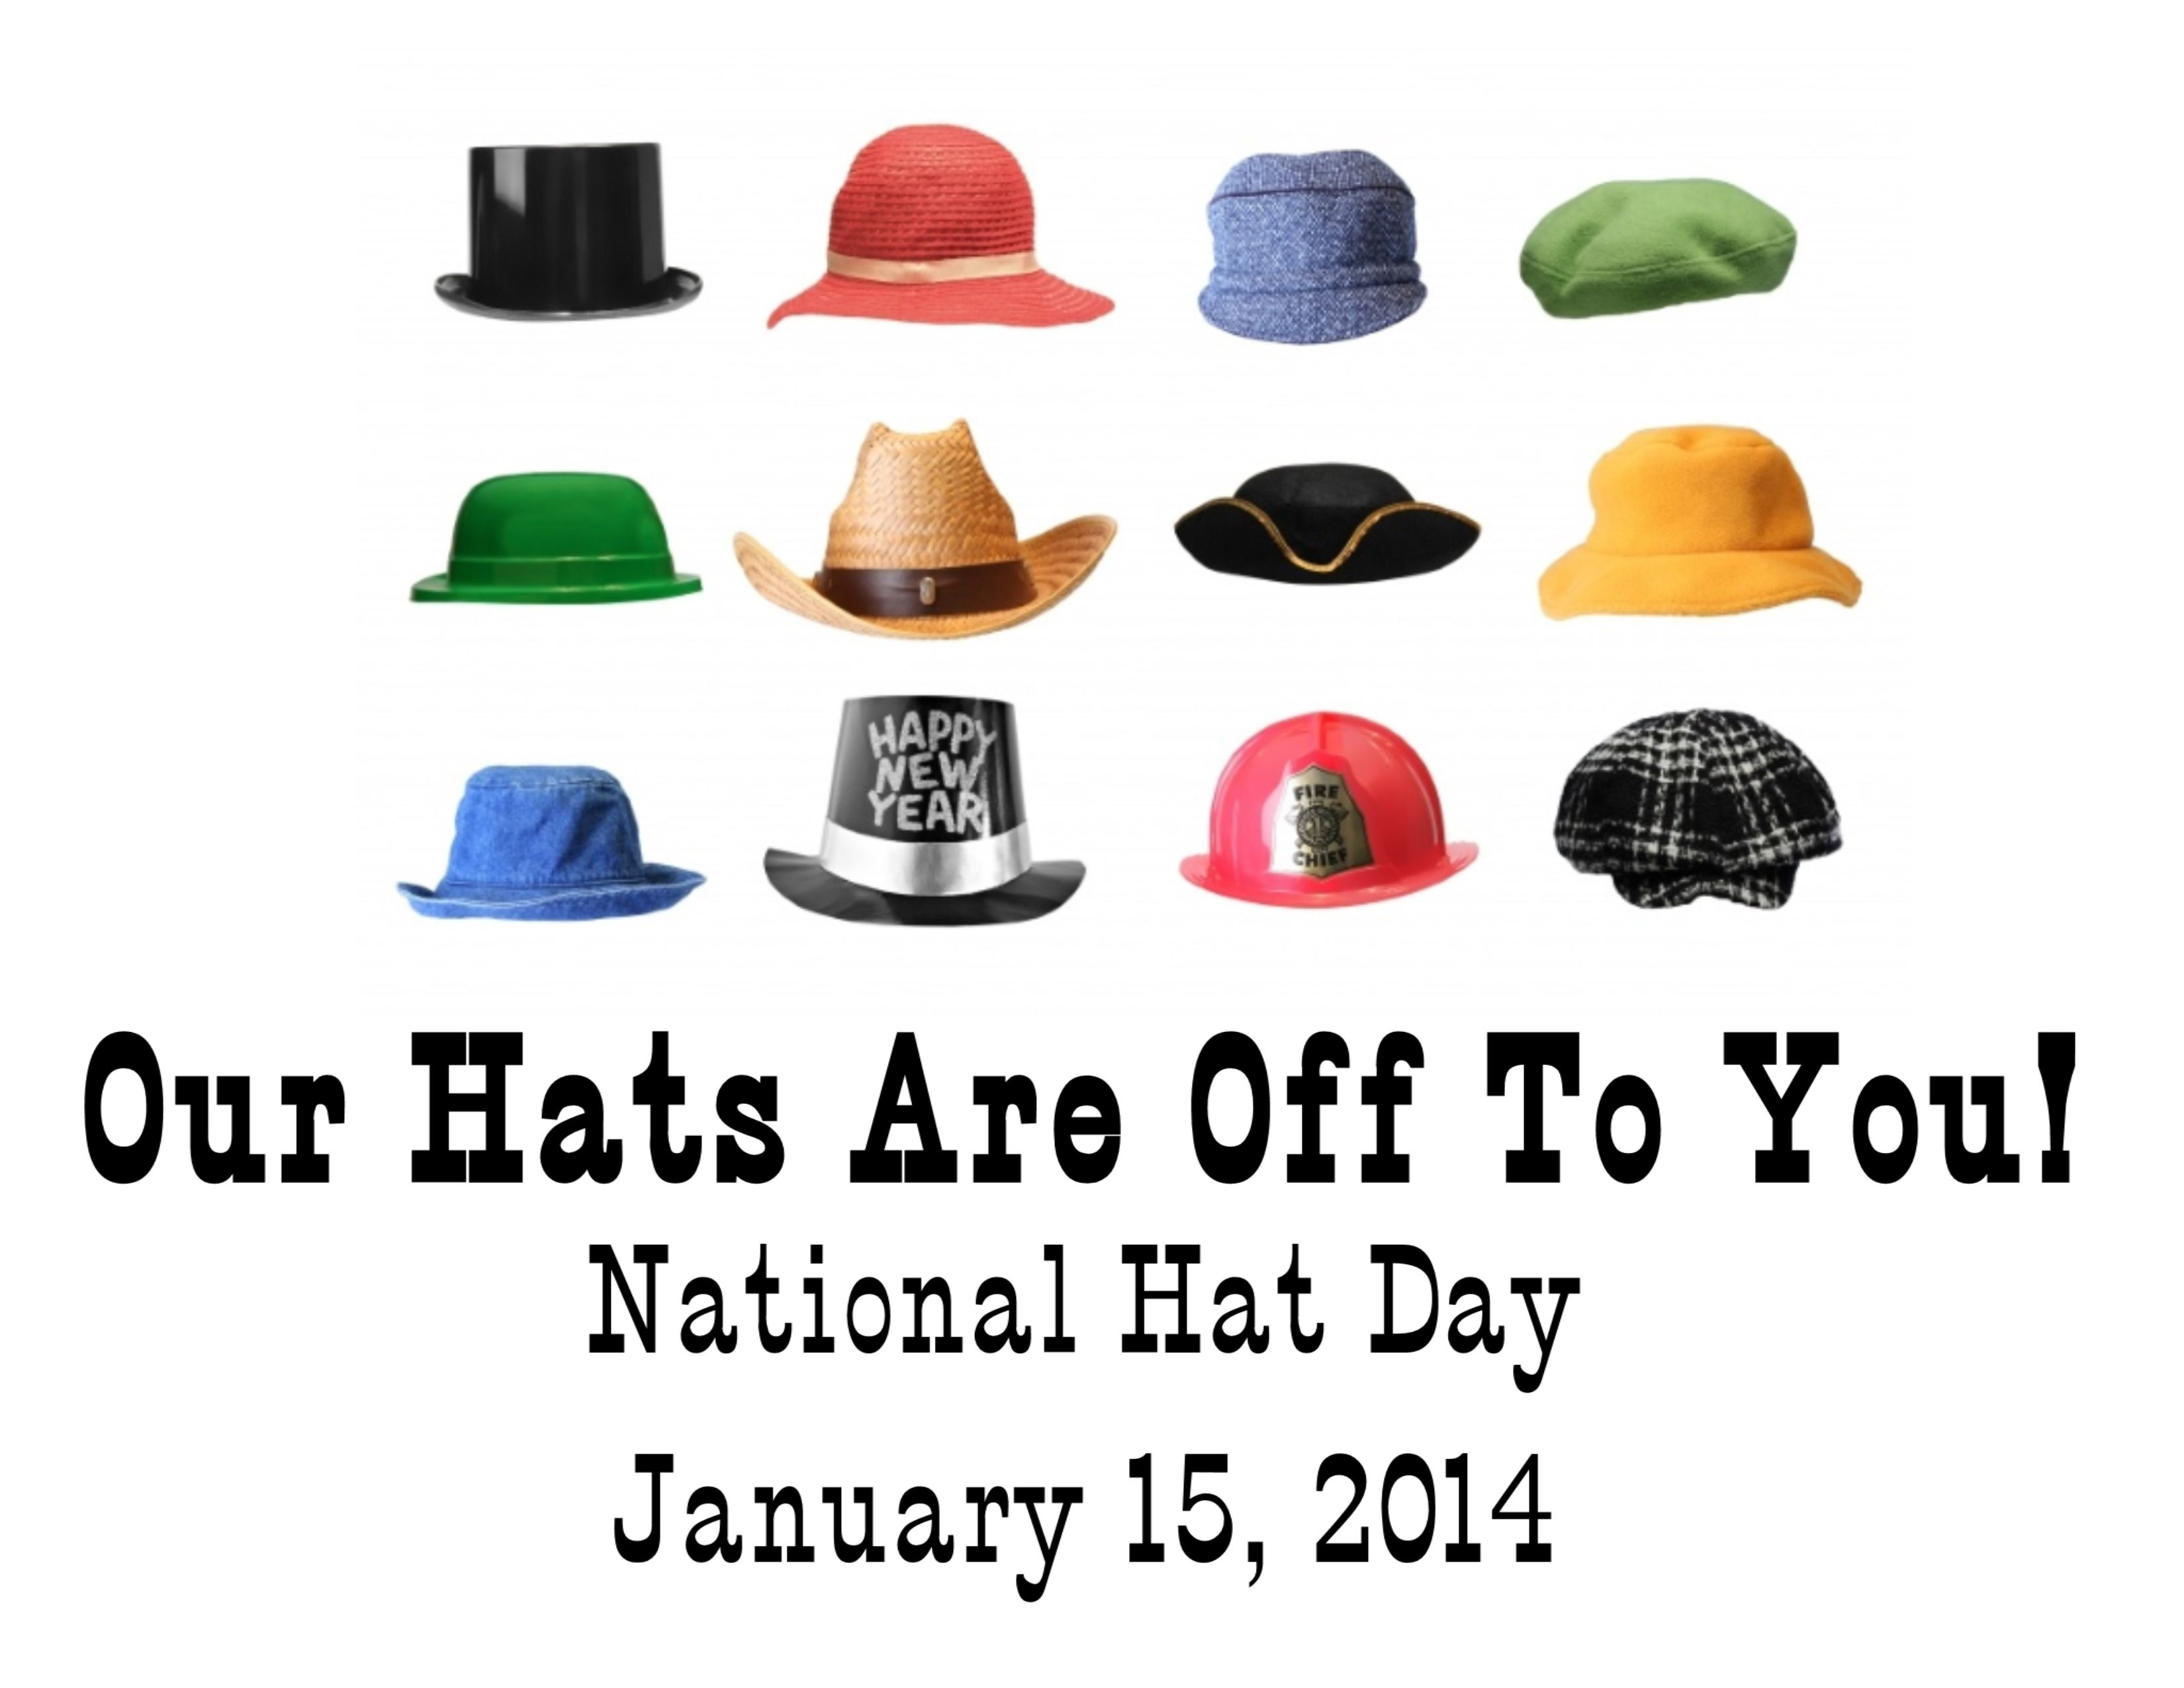 National Hat Day January 15 2014 Smileoasis Com Hat Day Hats Cool Office